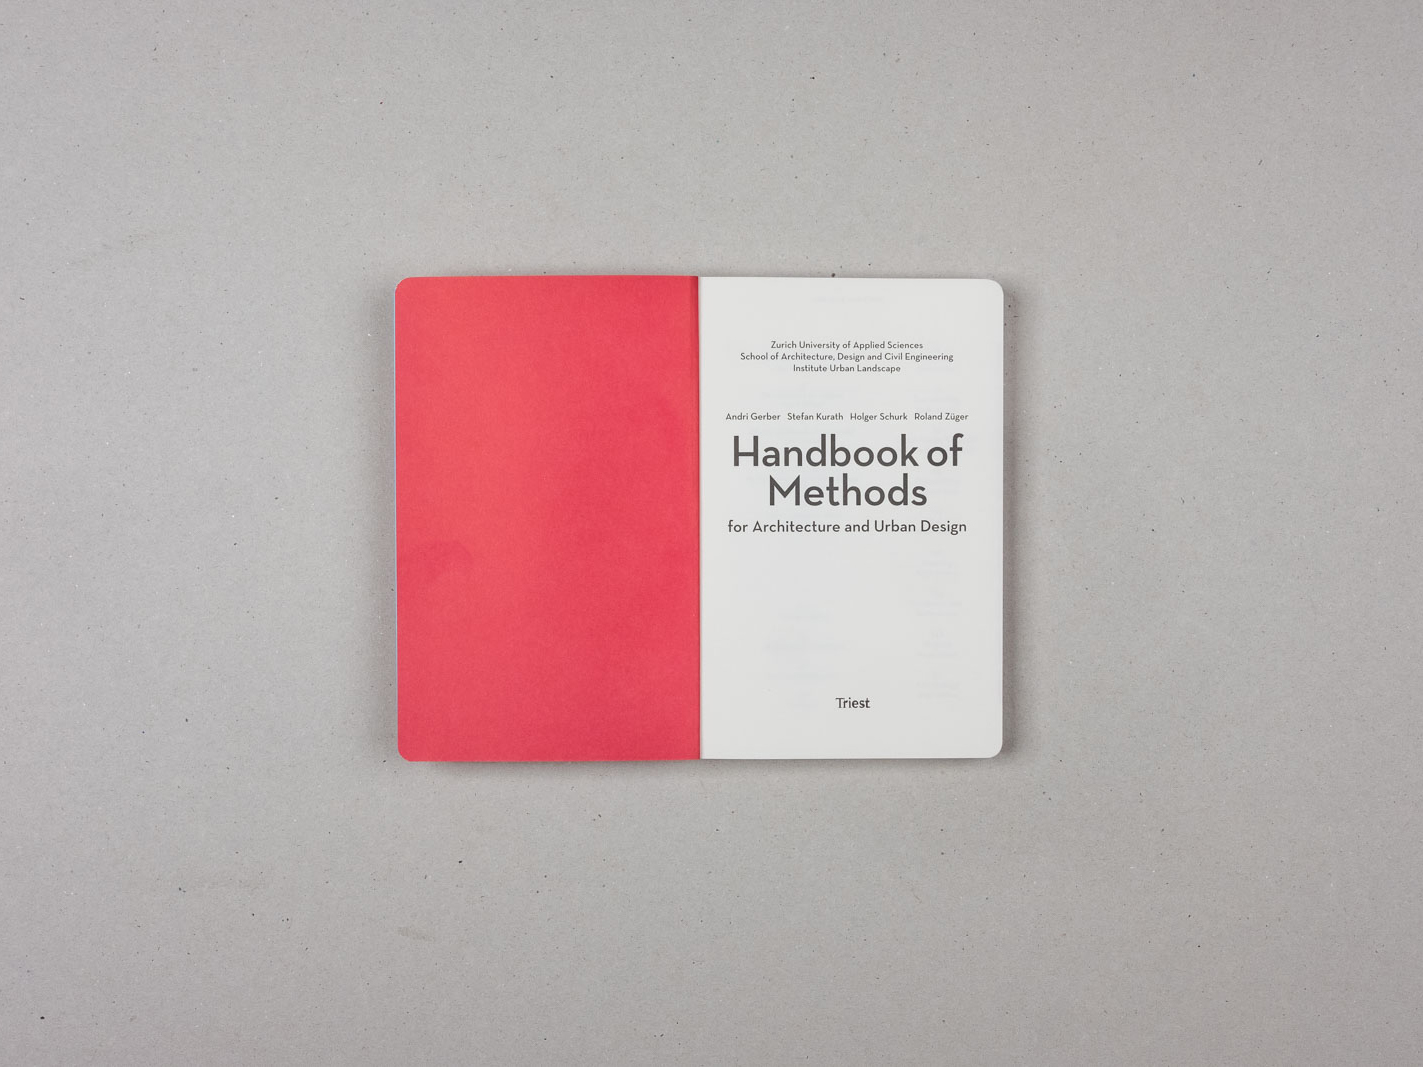 Handbook of Methods for Architecture and Urban Design - 1